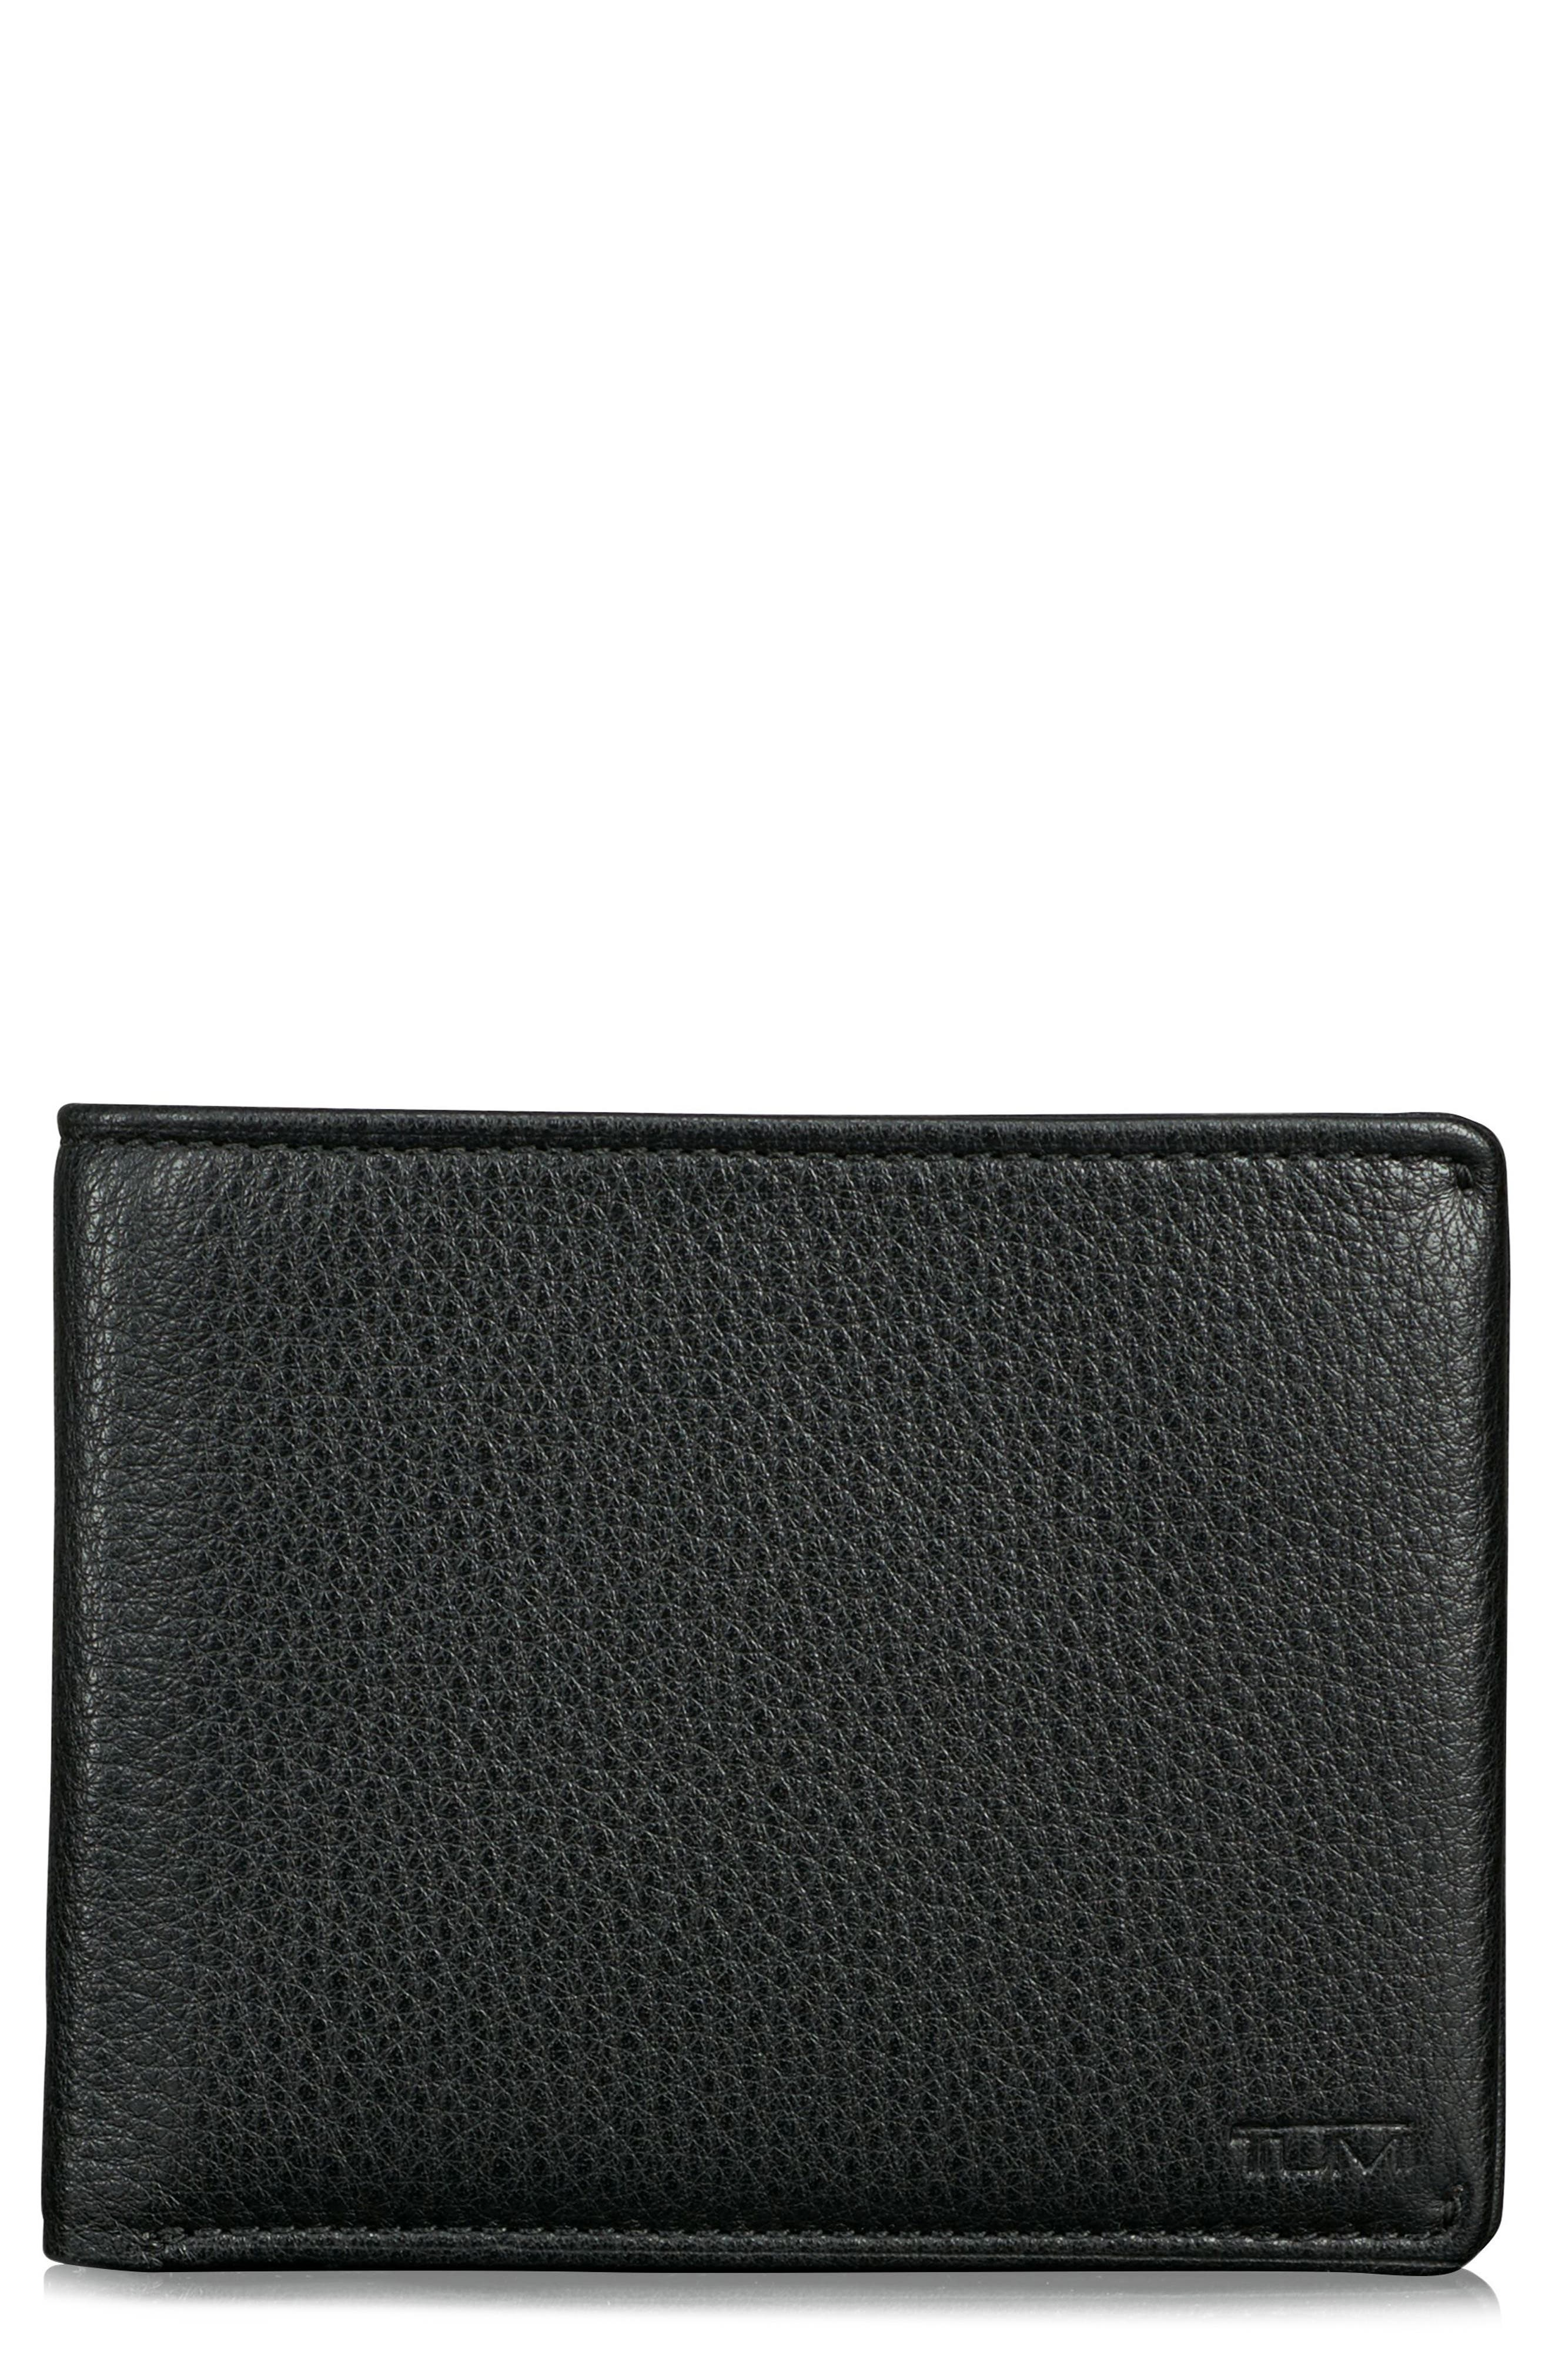 Global Leather RFID Wallet,                         Main,                         color, Black Textured